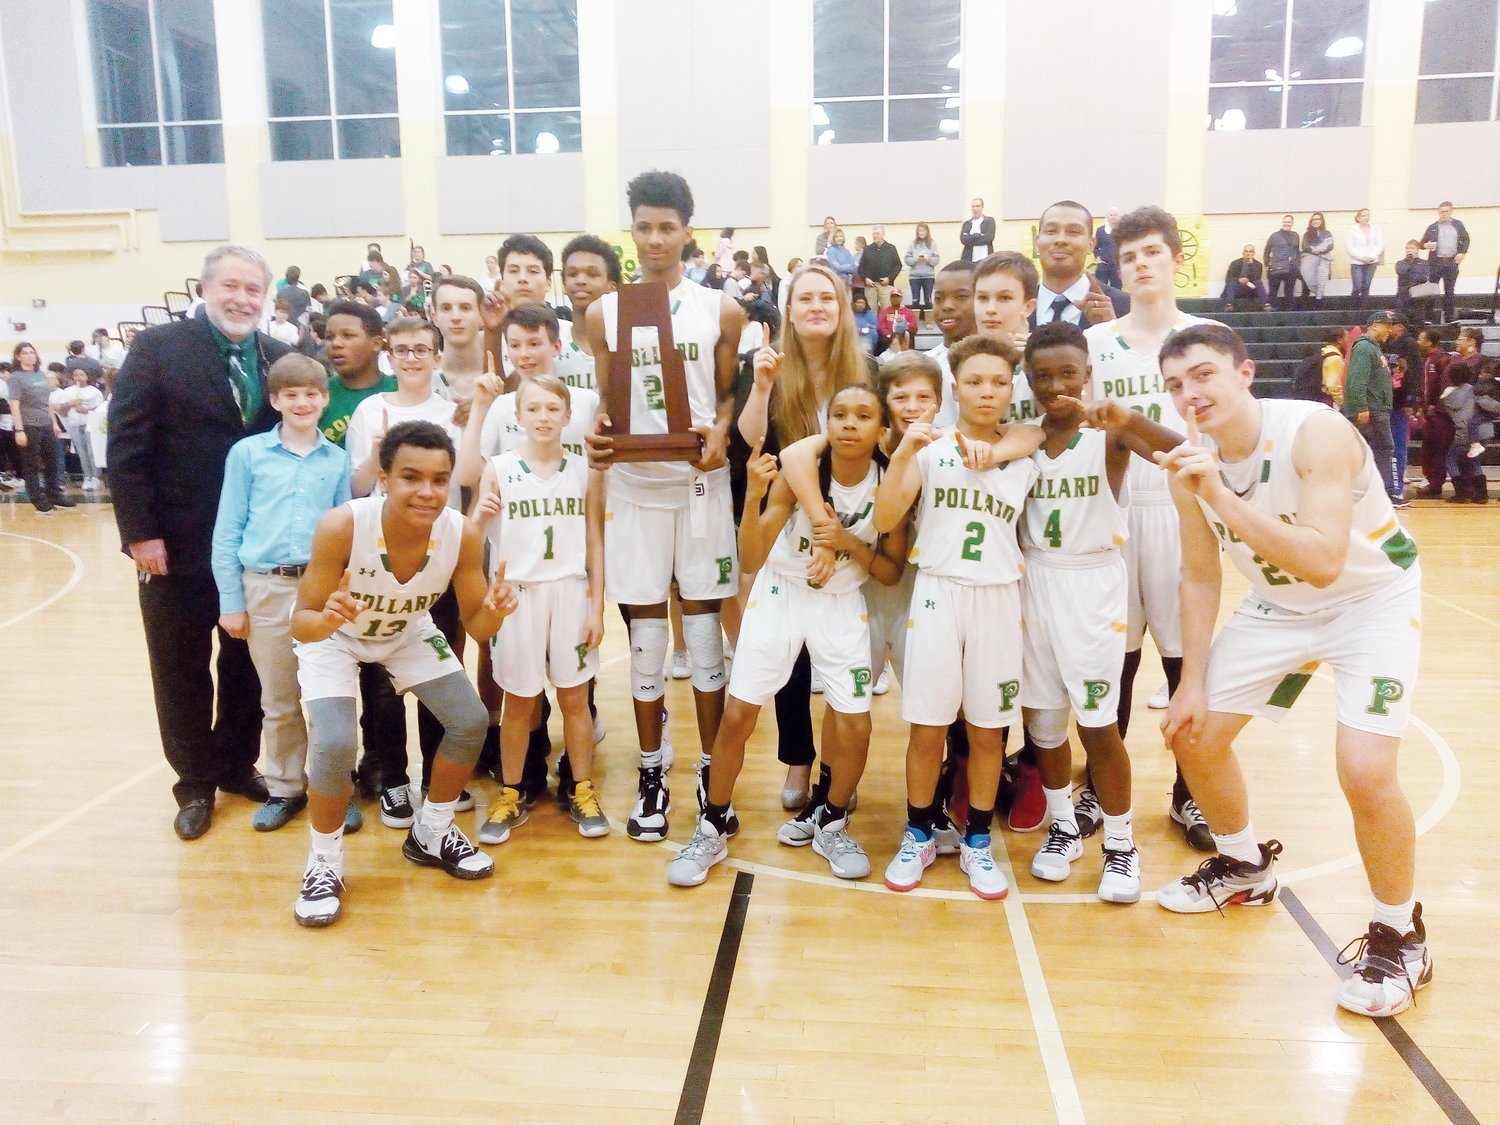 Margaret B. Pollard Middle School won the most recent Chatham County Schools men's and women's middle school basketball tournaments in February 2020 (before the COVID-19 pandemic).